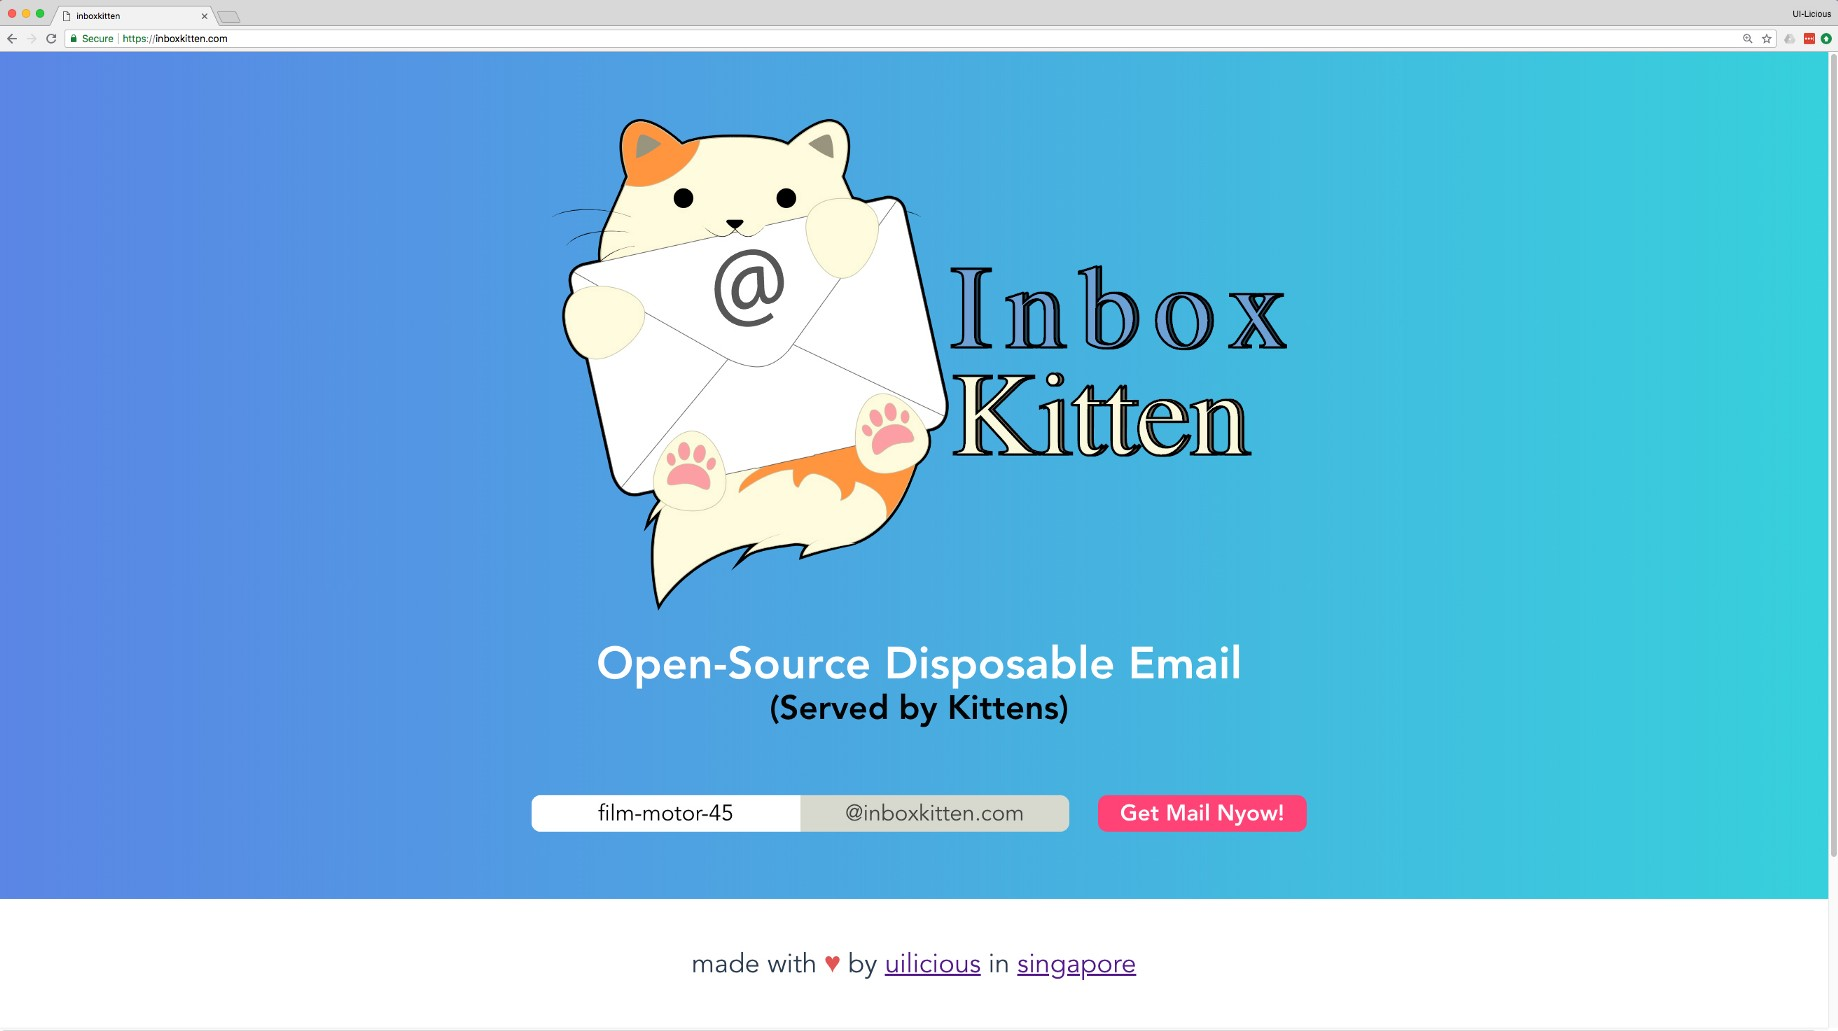 The Stack : Making a free open-source disposable email service